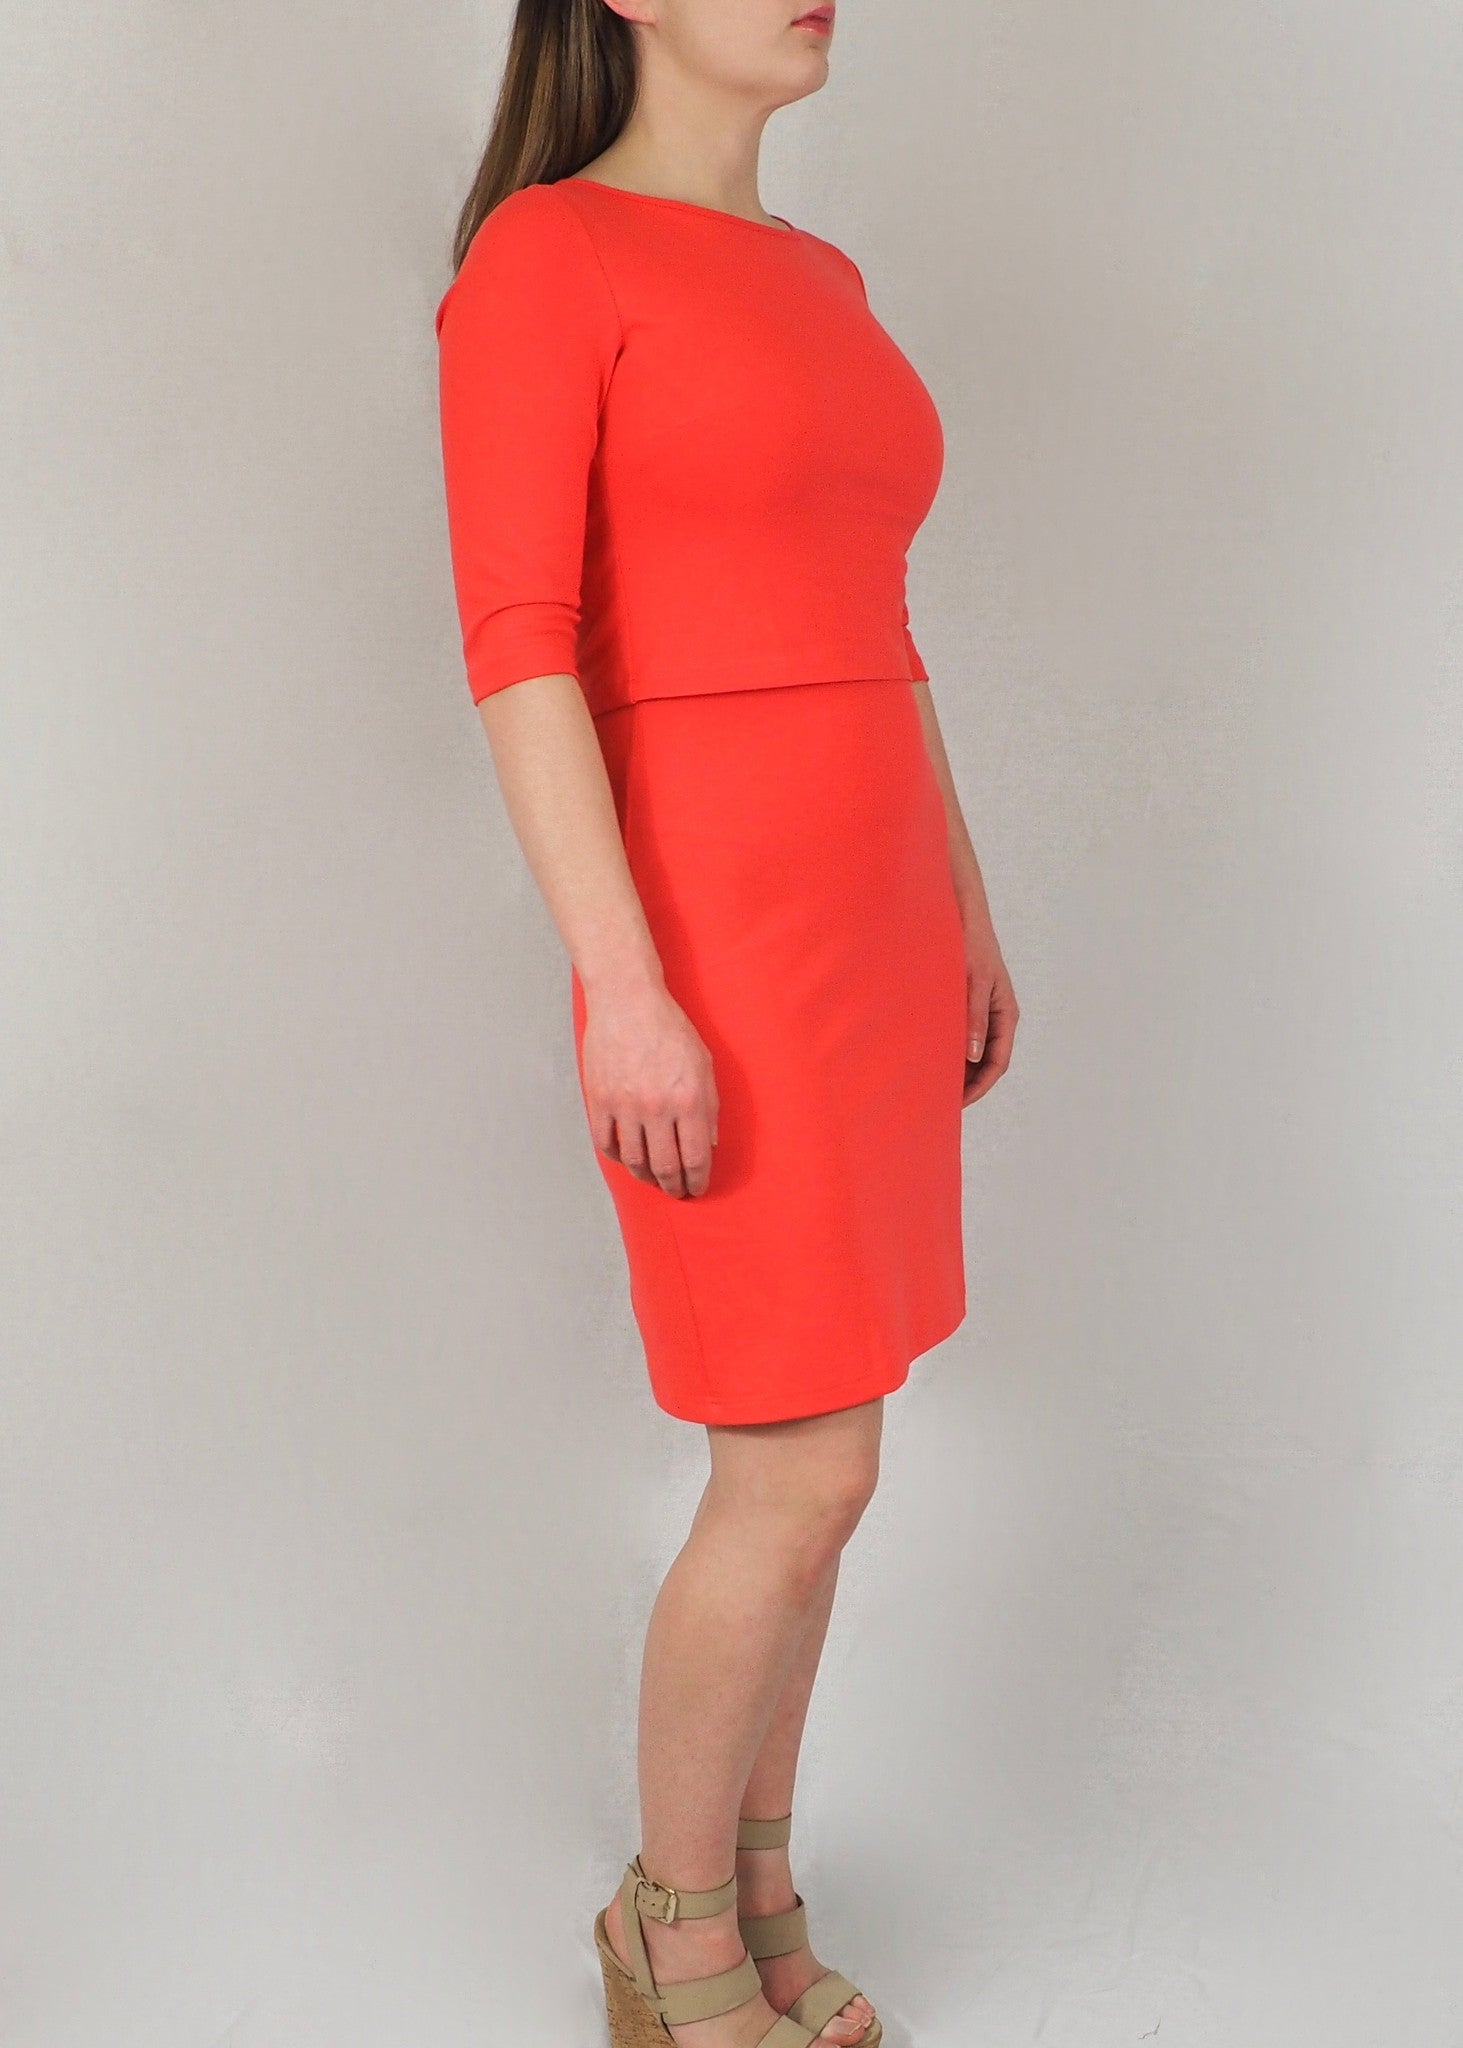 The Breastfeeding Dress - Coral